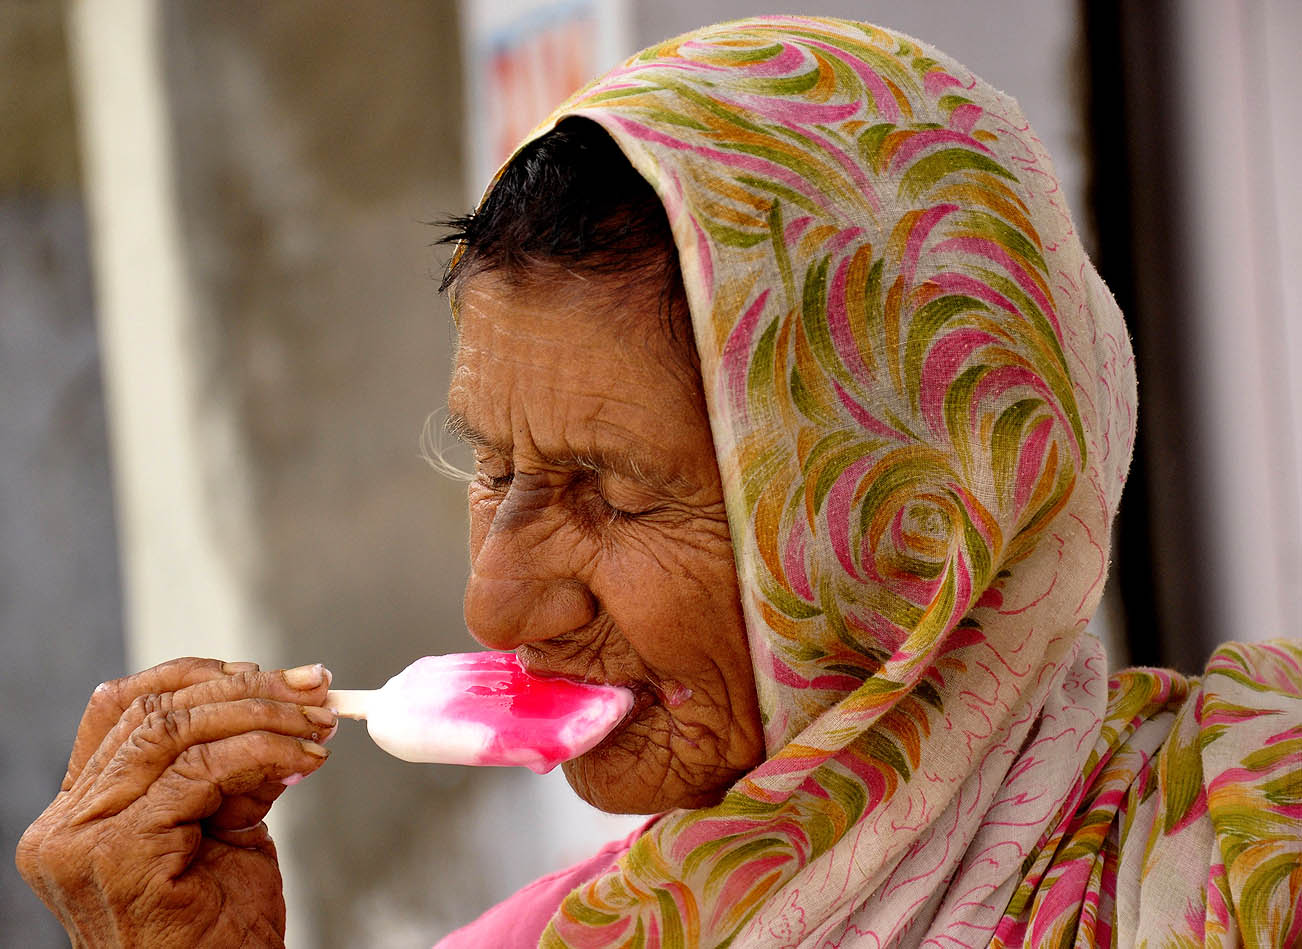 world with my eyes: an old lady enjoying an ice-candy on a hot day